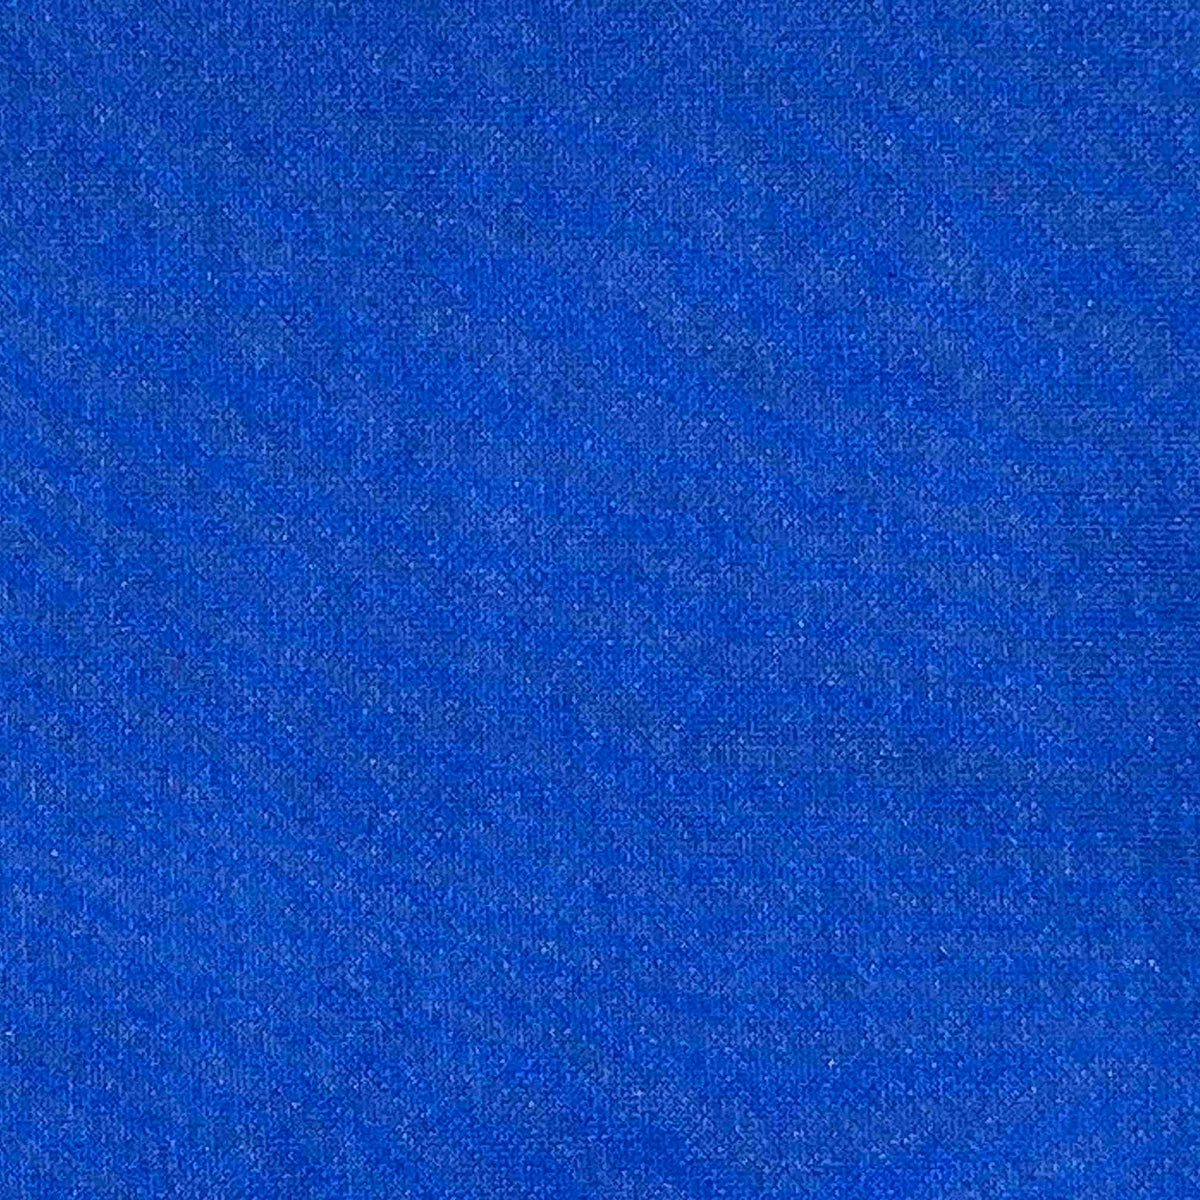 Royal Blue (linen): Pocket <1 Micron Filtering Mask, Breathable & Good Seal